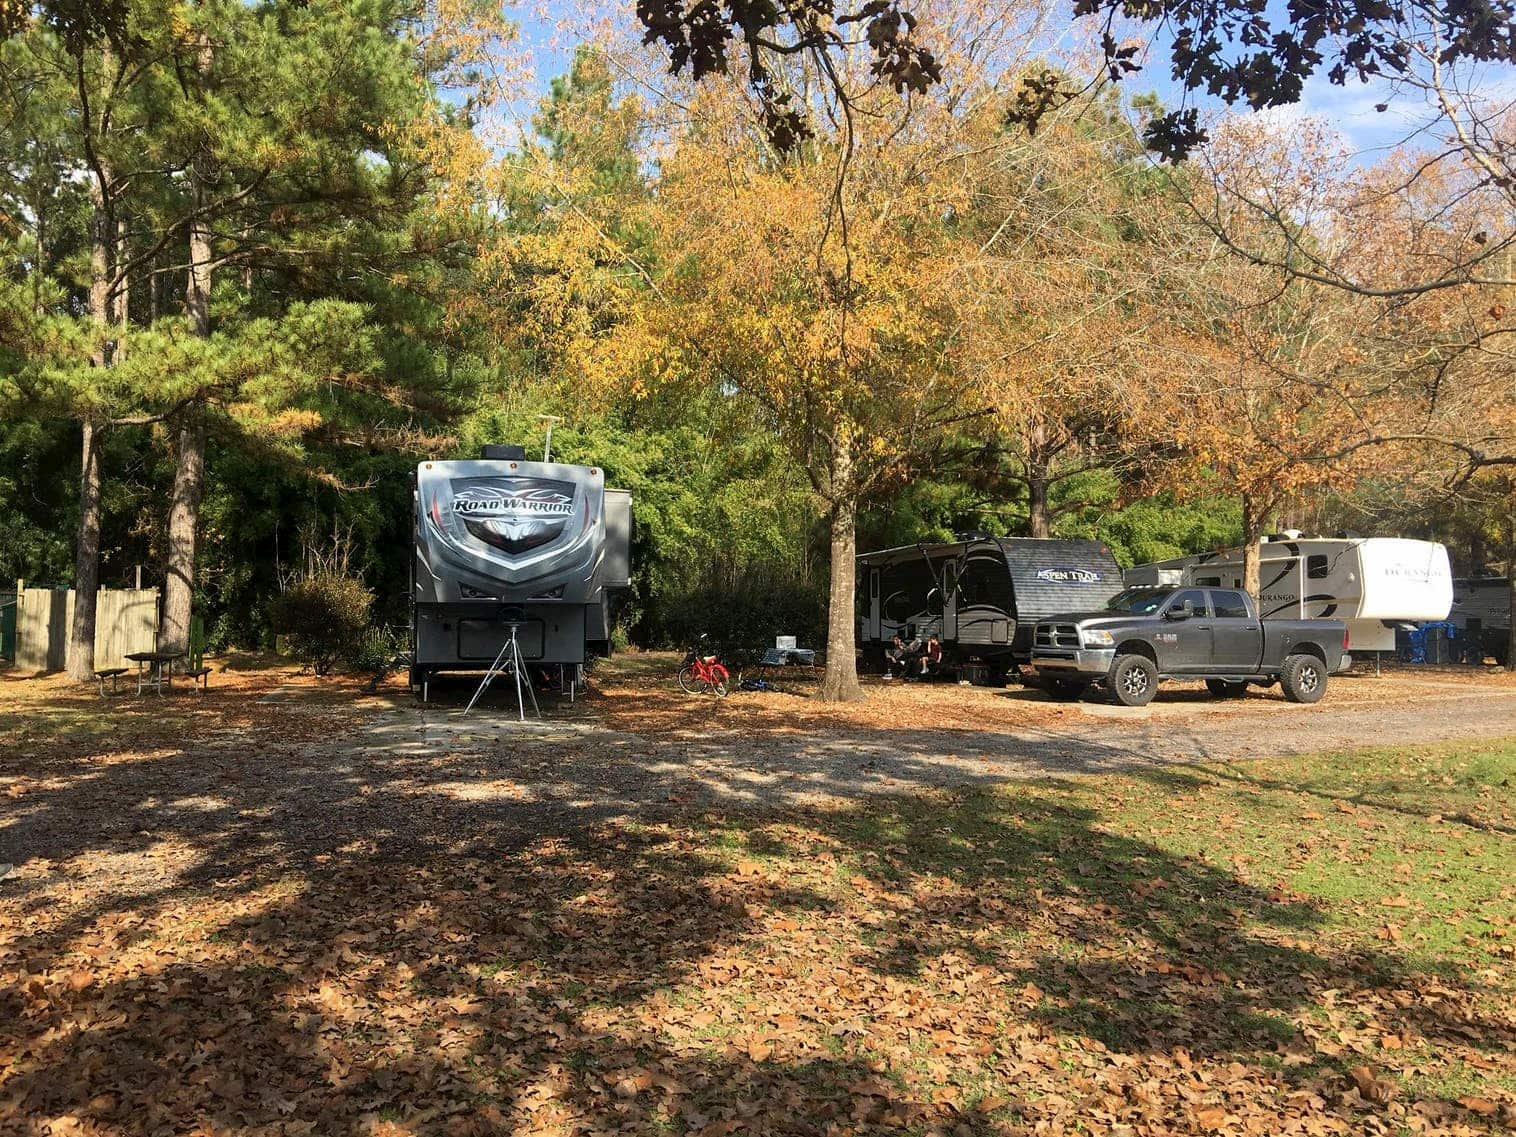 RV park in Louisiana in the fall under trees with changing foliage.